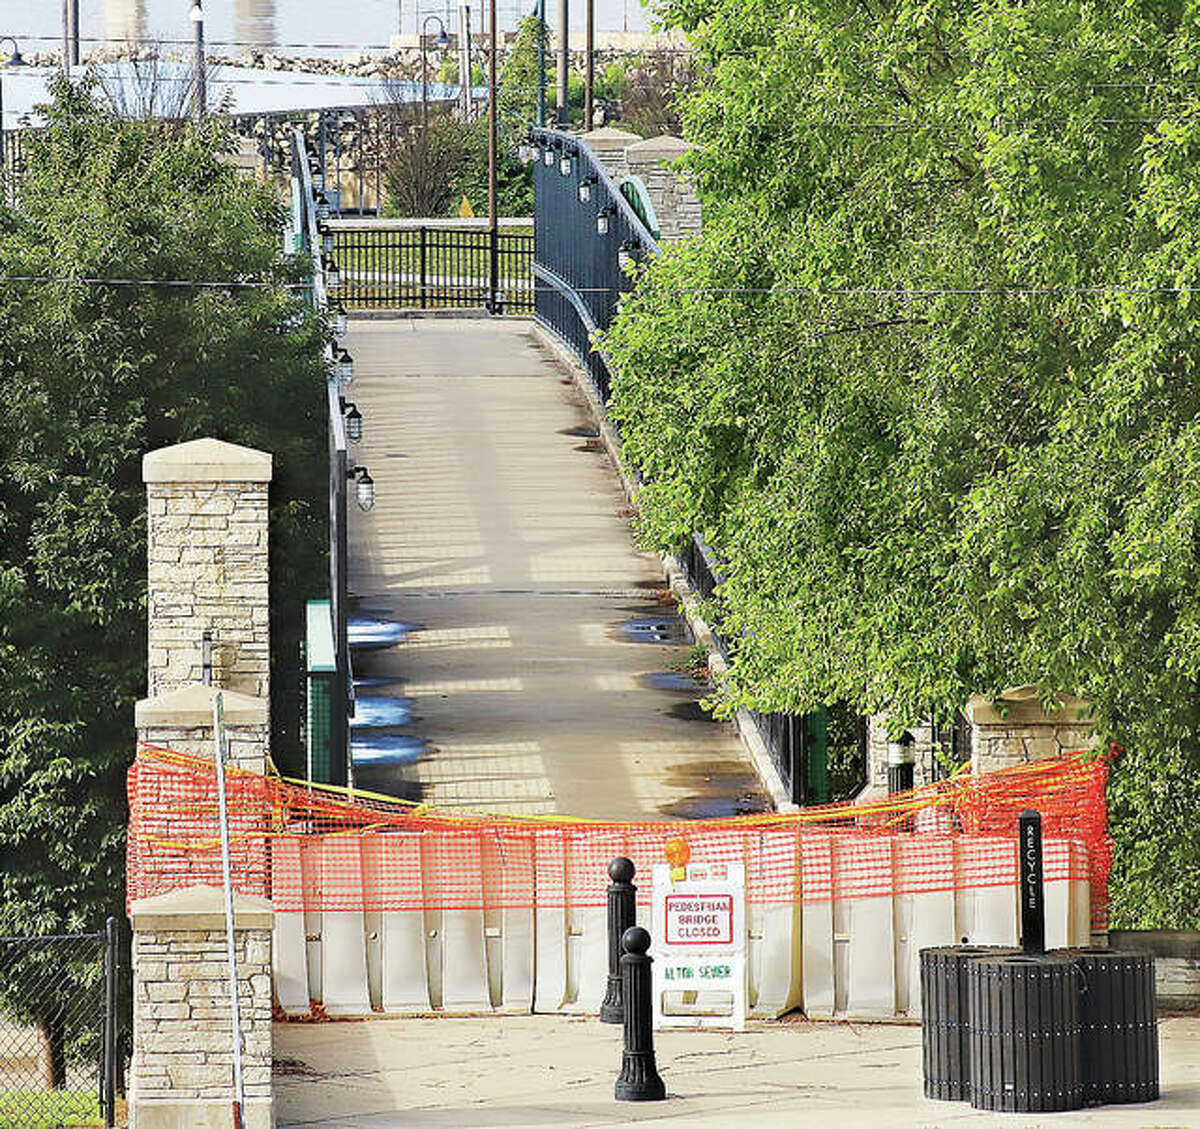 The Pedestrian Bridge in Alton, which was closed for repairs last year, is back open and able to carry pedestrians through a green scene of trees and grass. The bridge connects East Broadway to Riverfront Park and the Liberty Bank Ampitheater. It provides safe park access for pedestrians and bicycle riders. (File photo)